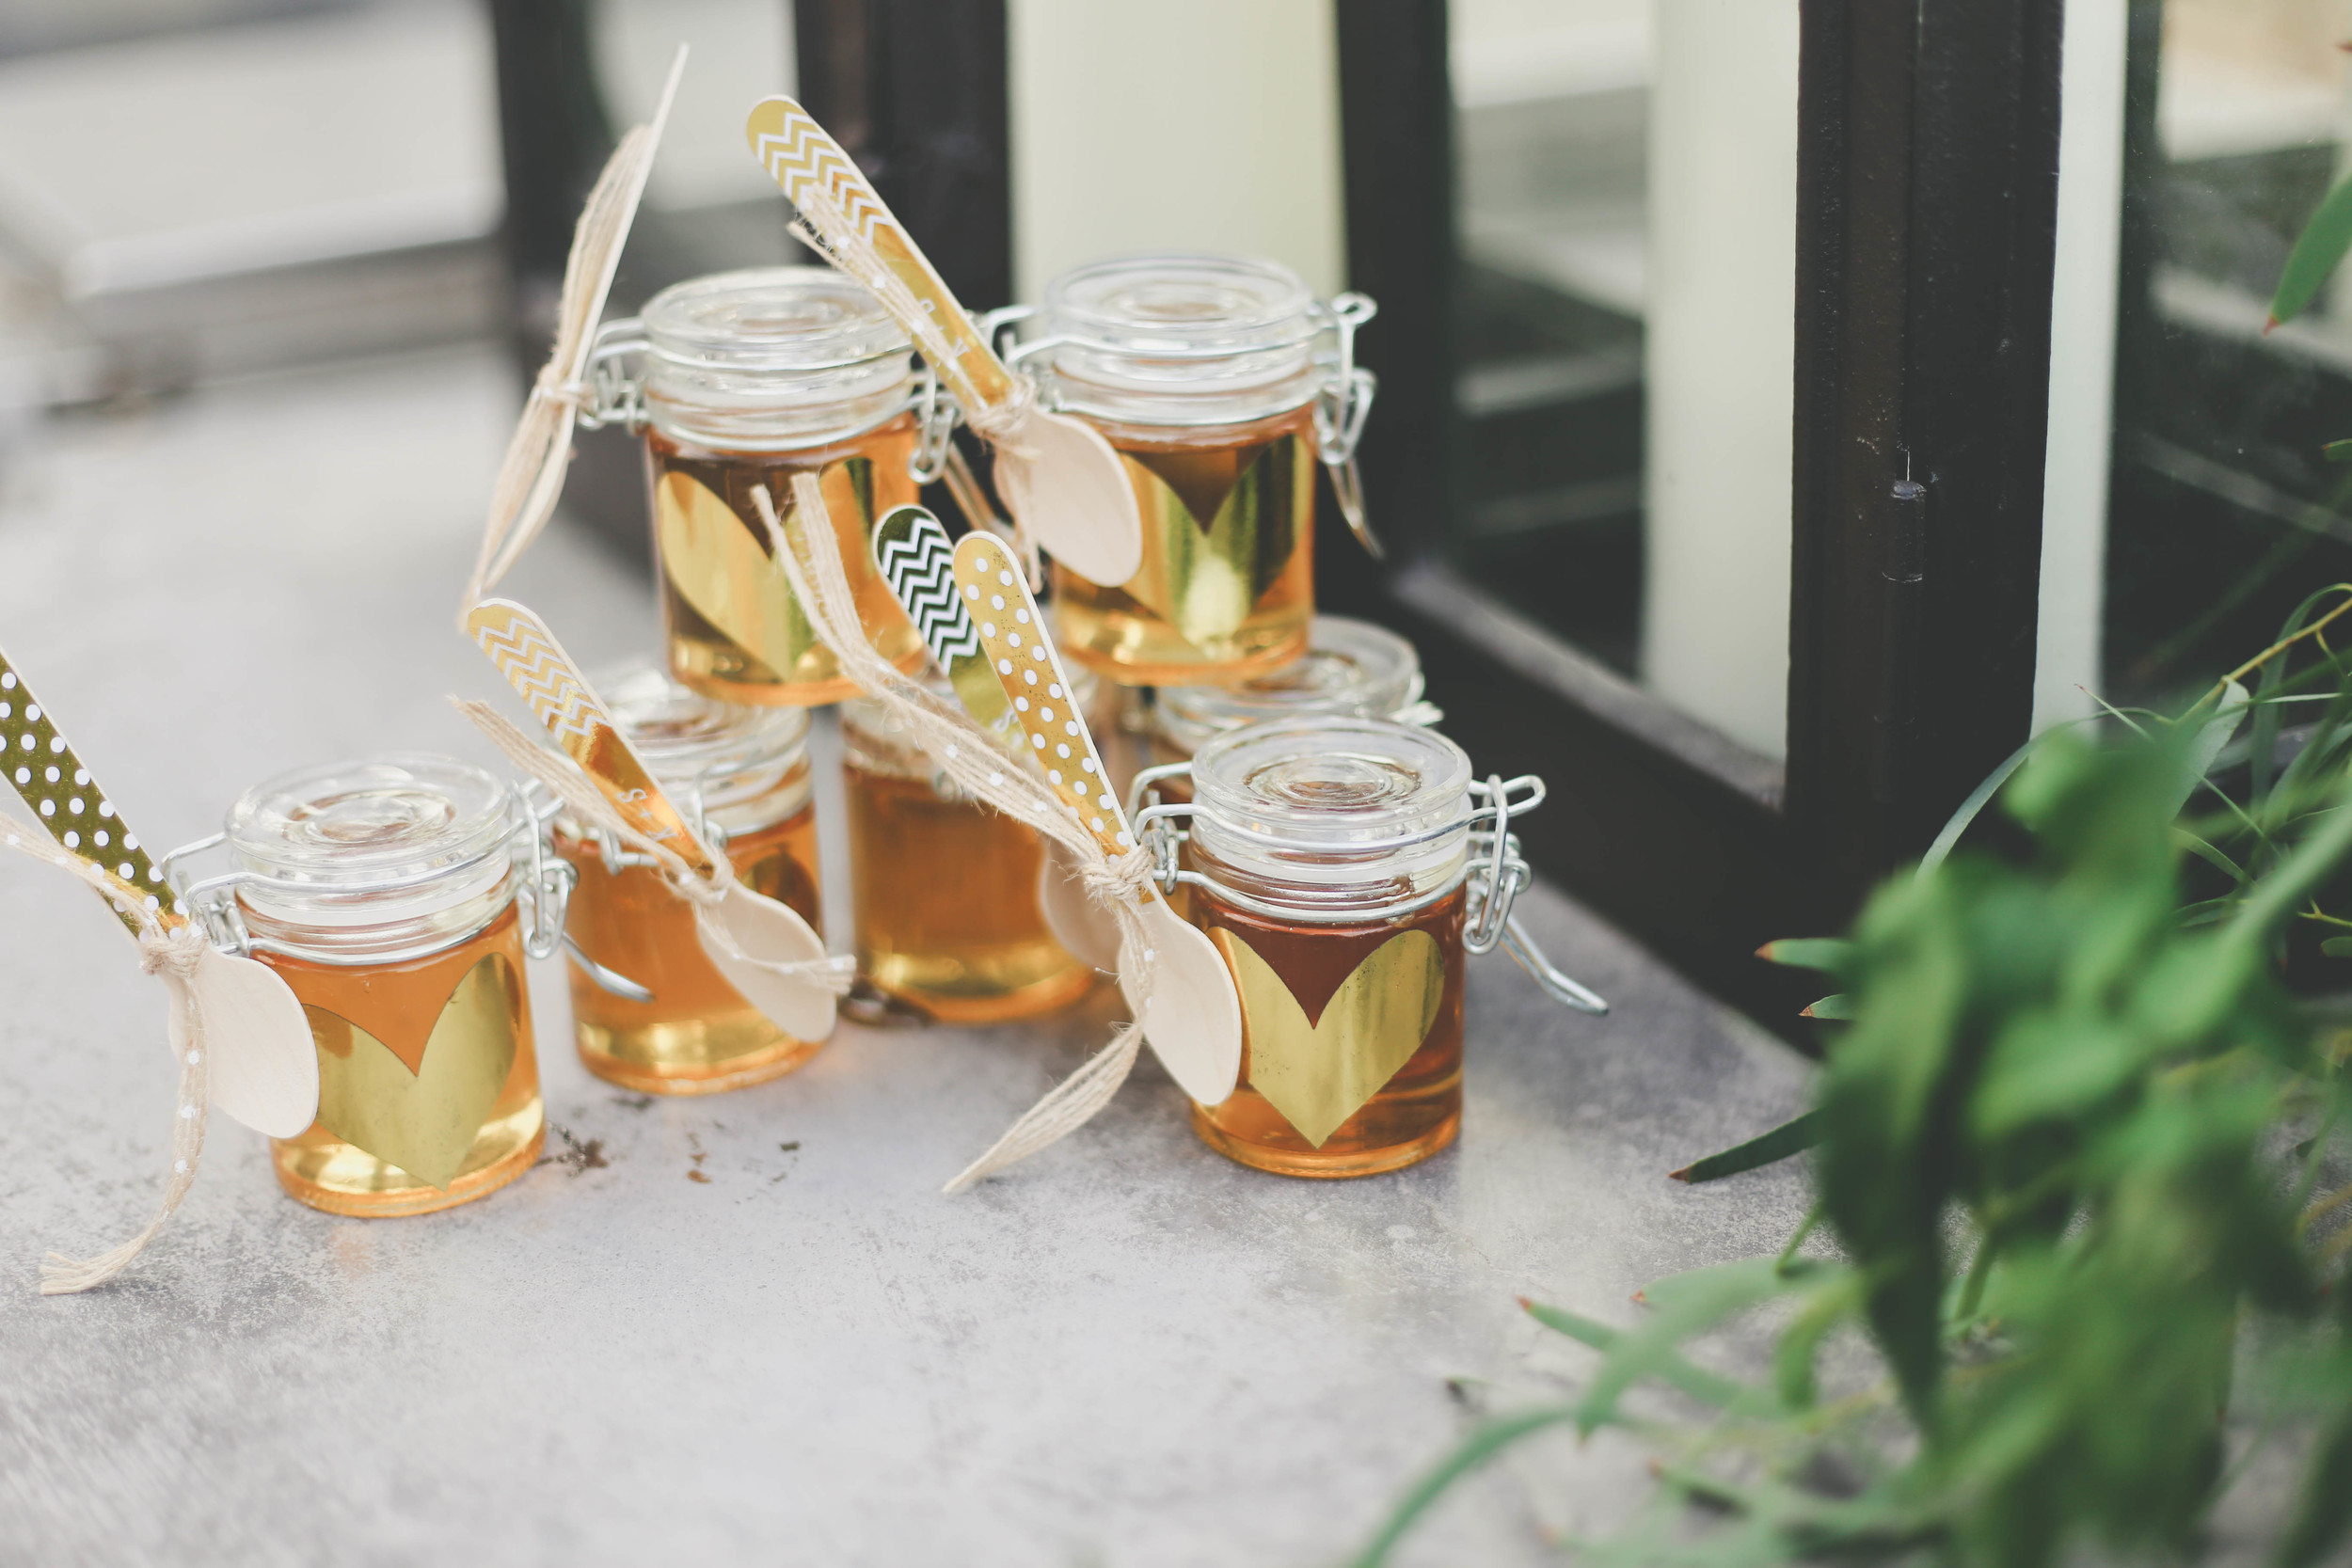 sonoma-county-healdsburg-wedding-photographer-details-favors-arista-winery